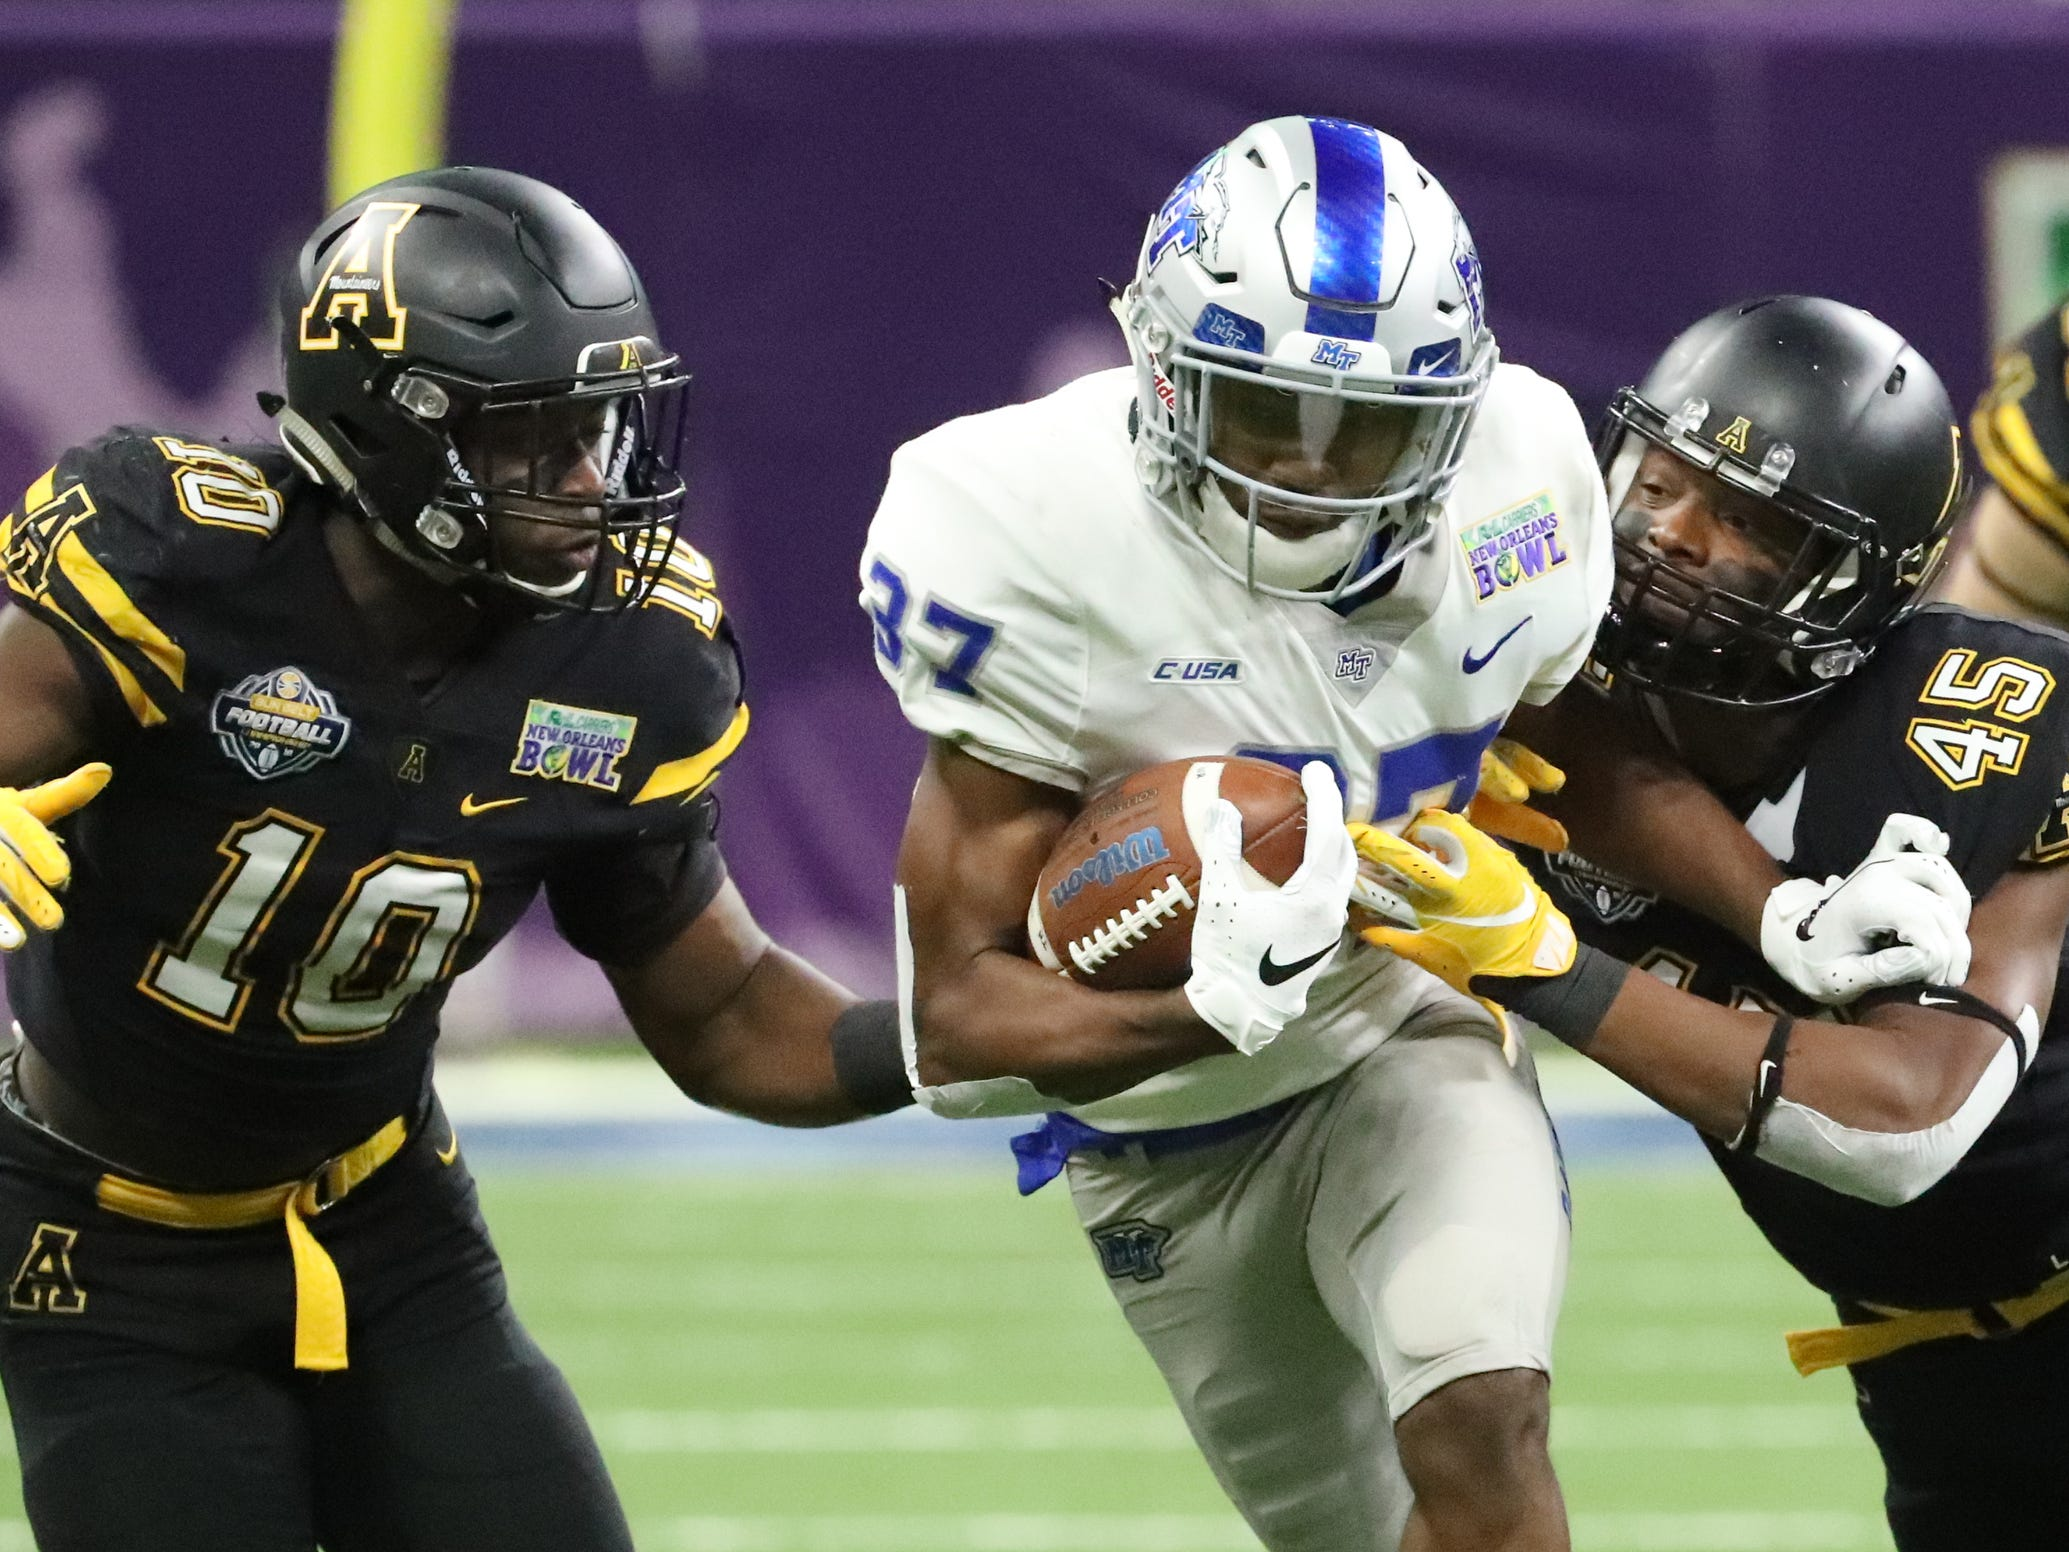 Middle Tennessee Blue Raiders wide receiver Patrick Smith (37) runs the ball as Appalachian State Mountaineers linebacker Tim Frizzell (10) and Appalachian State Mountaineers linebacker Trey Cobb (45) move for the tackle on Saturday, Dec. 15, 2018, during the New Orleans Bowl.